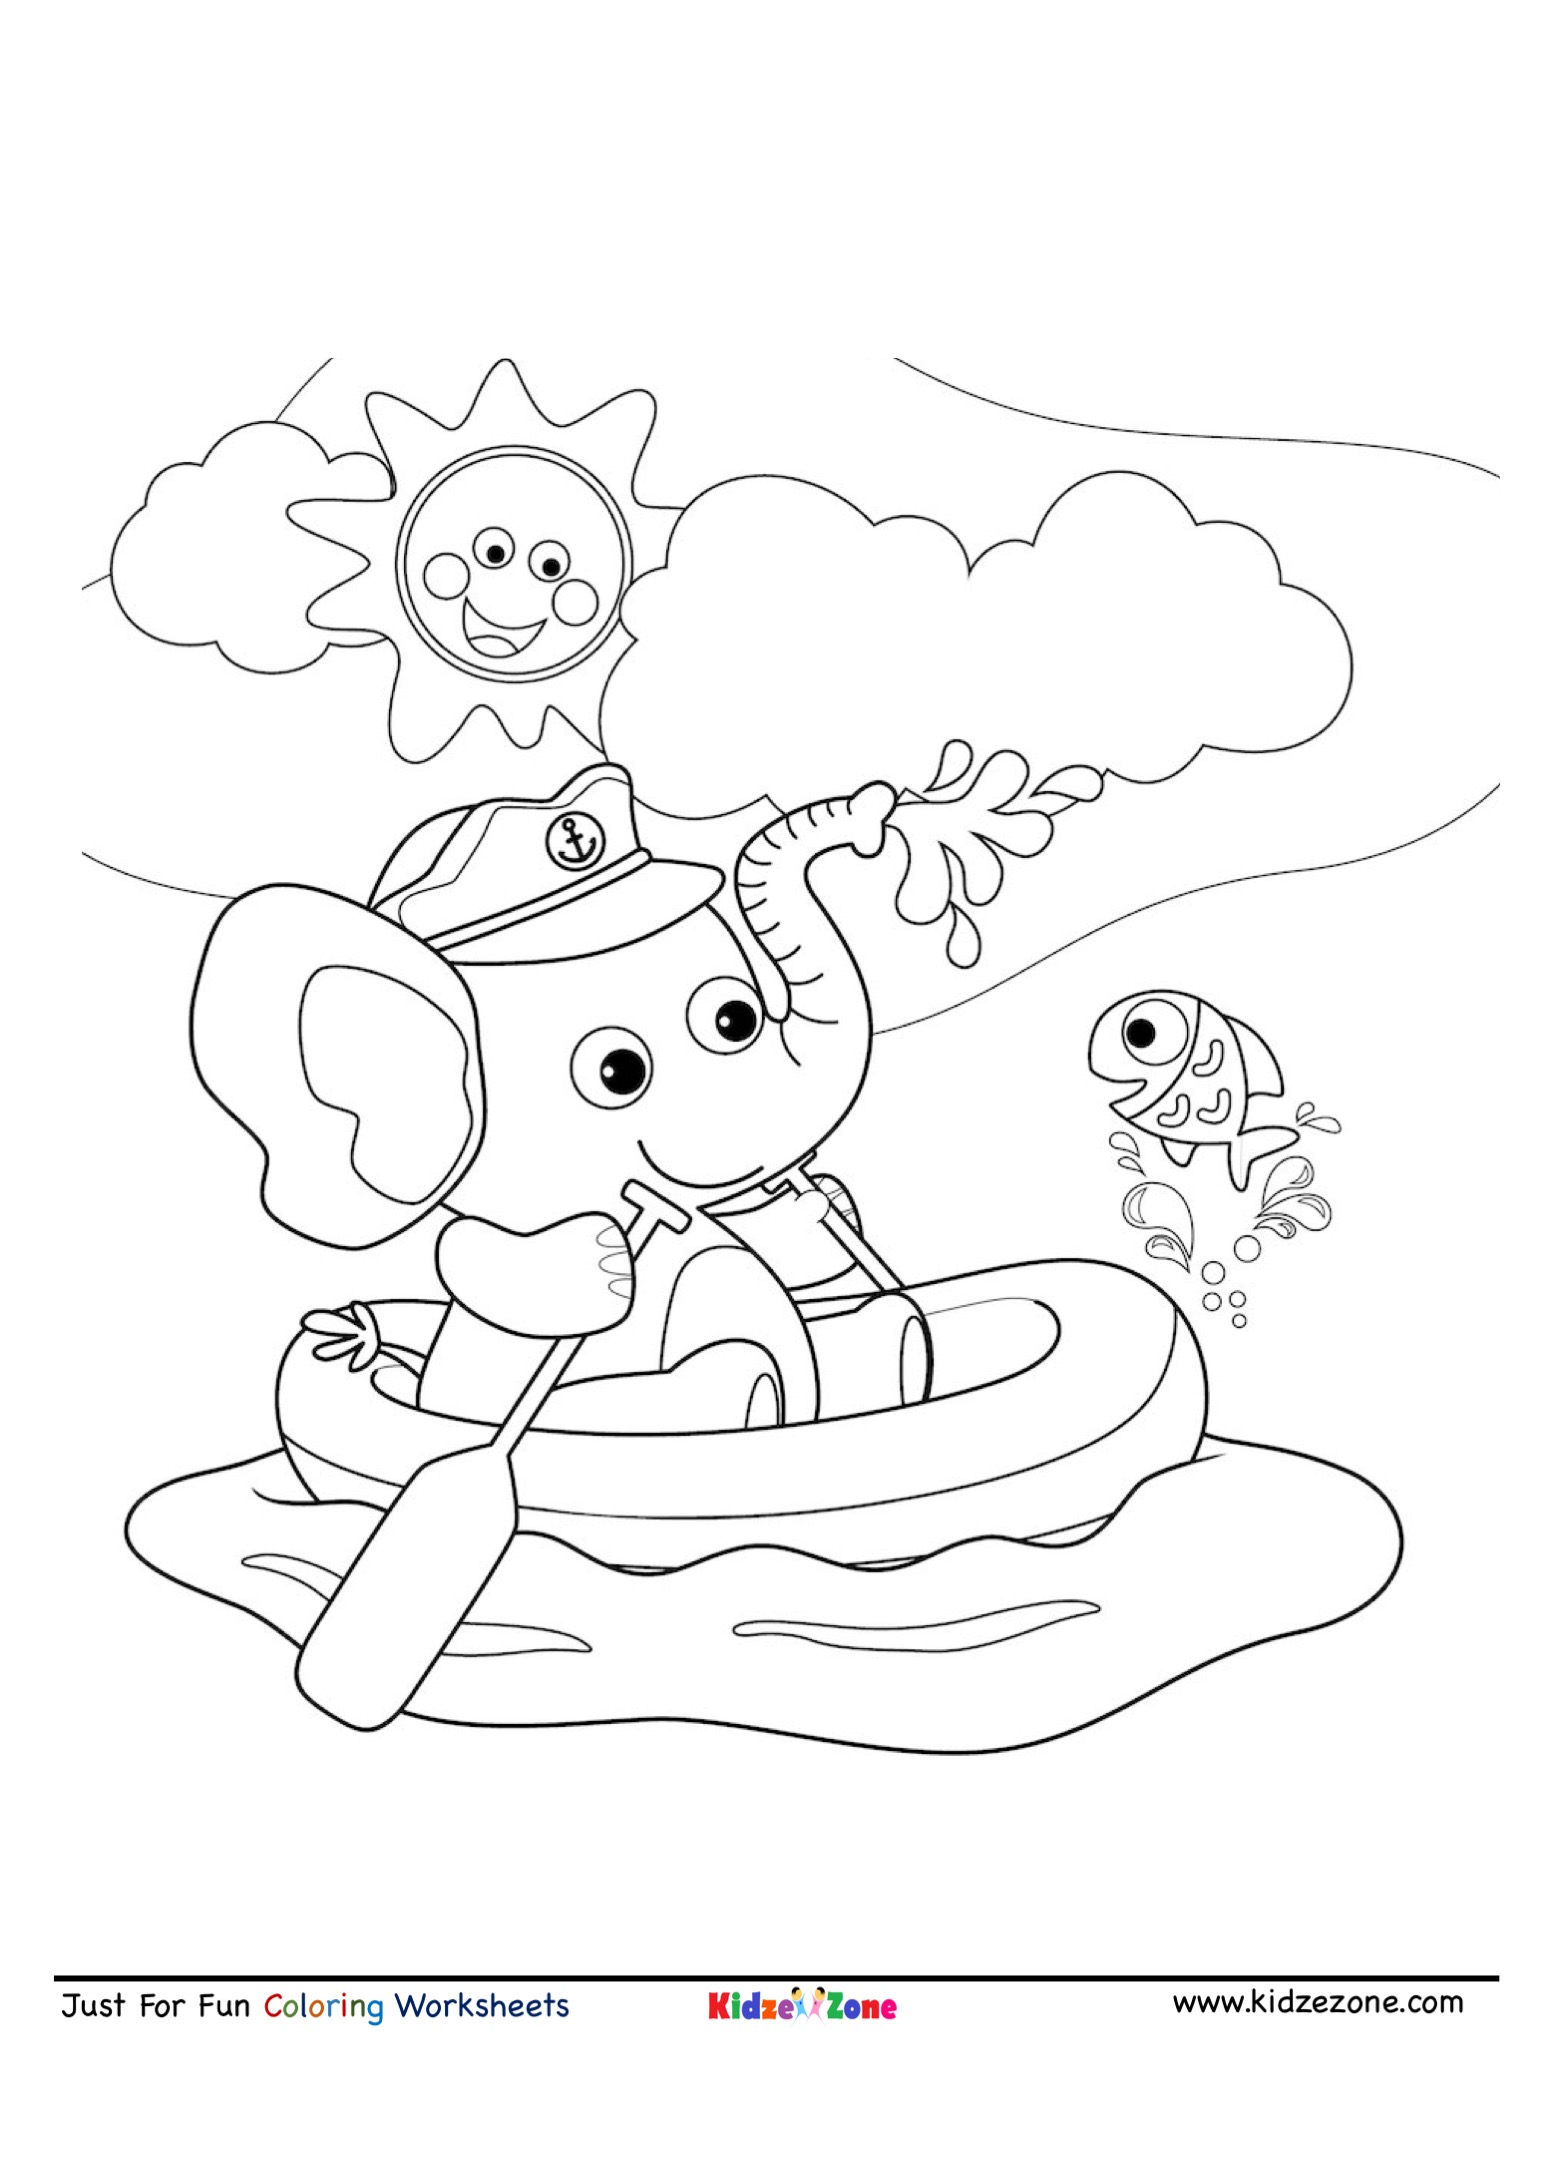 Elephant Boating Cartoon Coloring Page